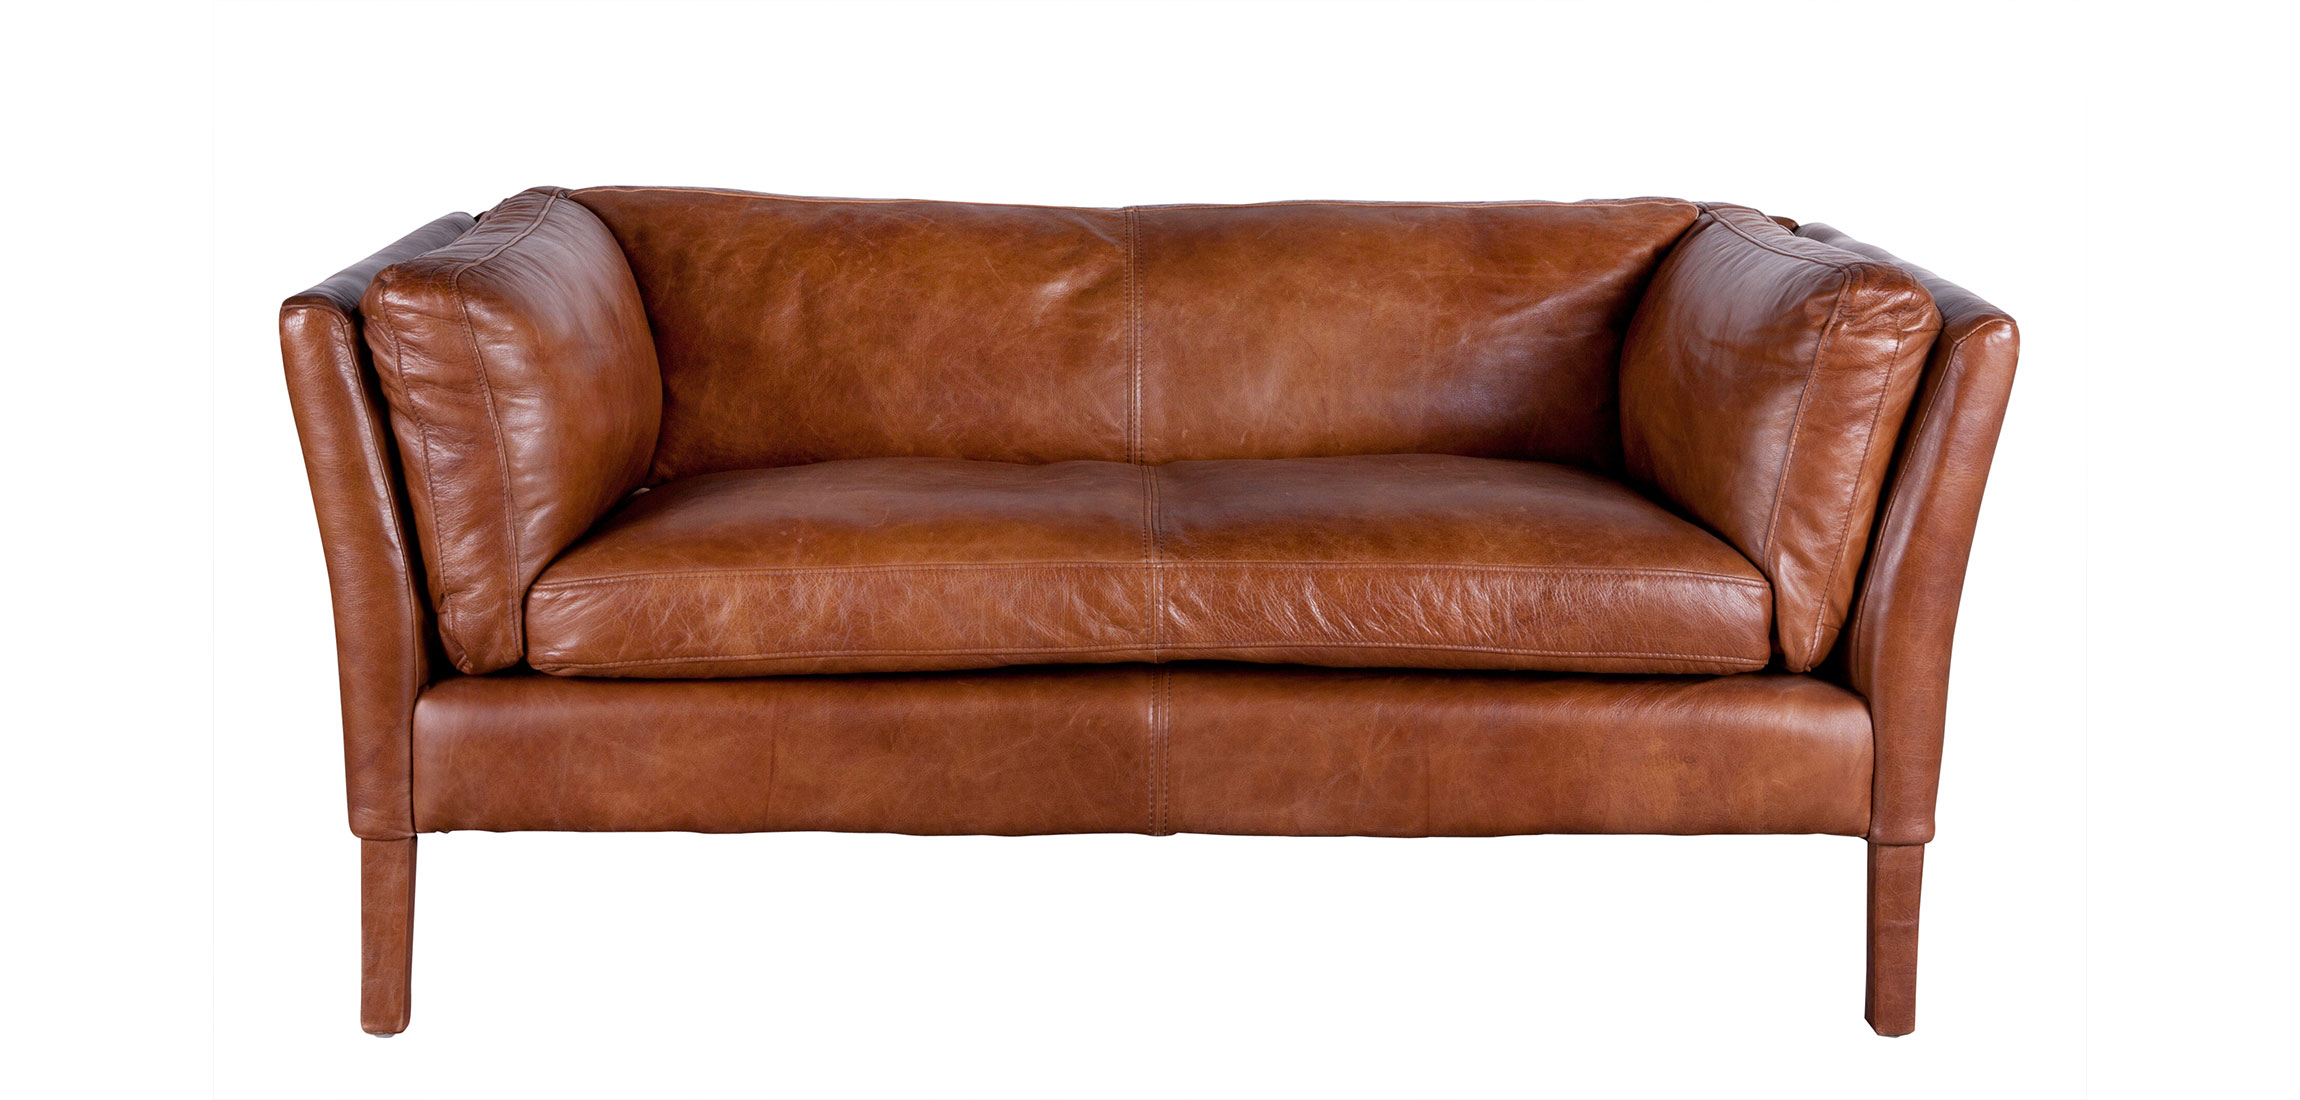 Fabulous Bellamy Sofa Cognac Brown Leather 2 Seater Flamant Pdpeps Interior Chair Design Pdpepsorg